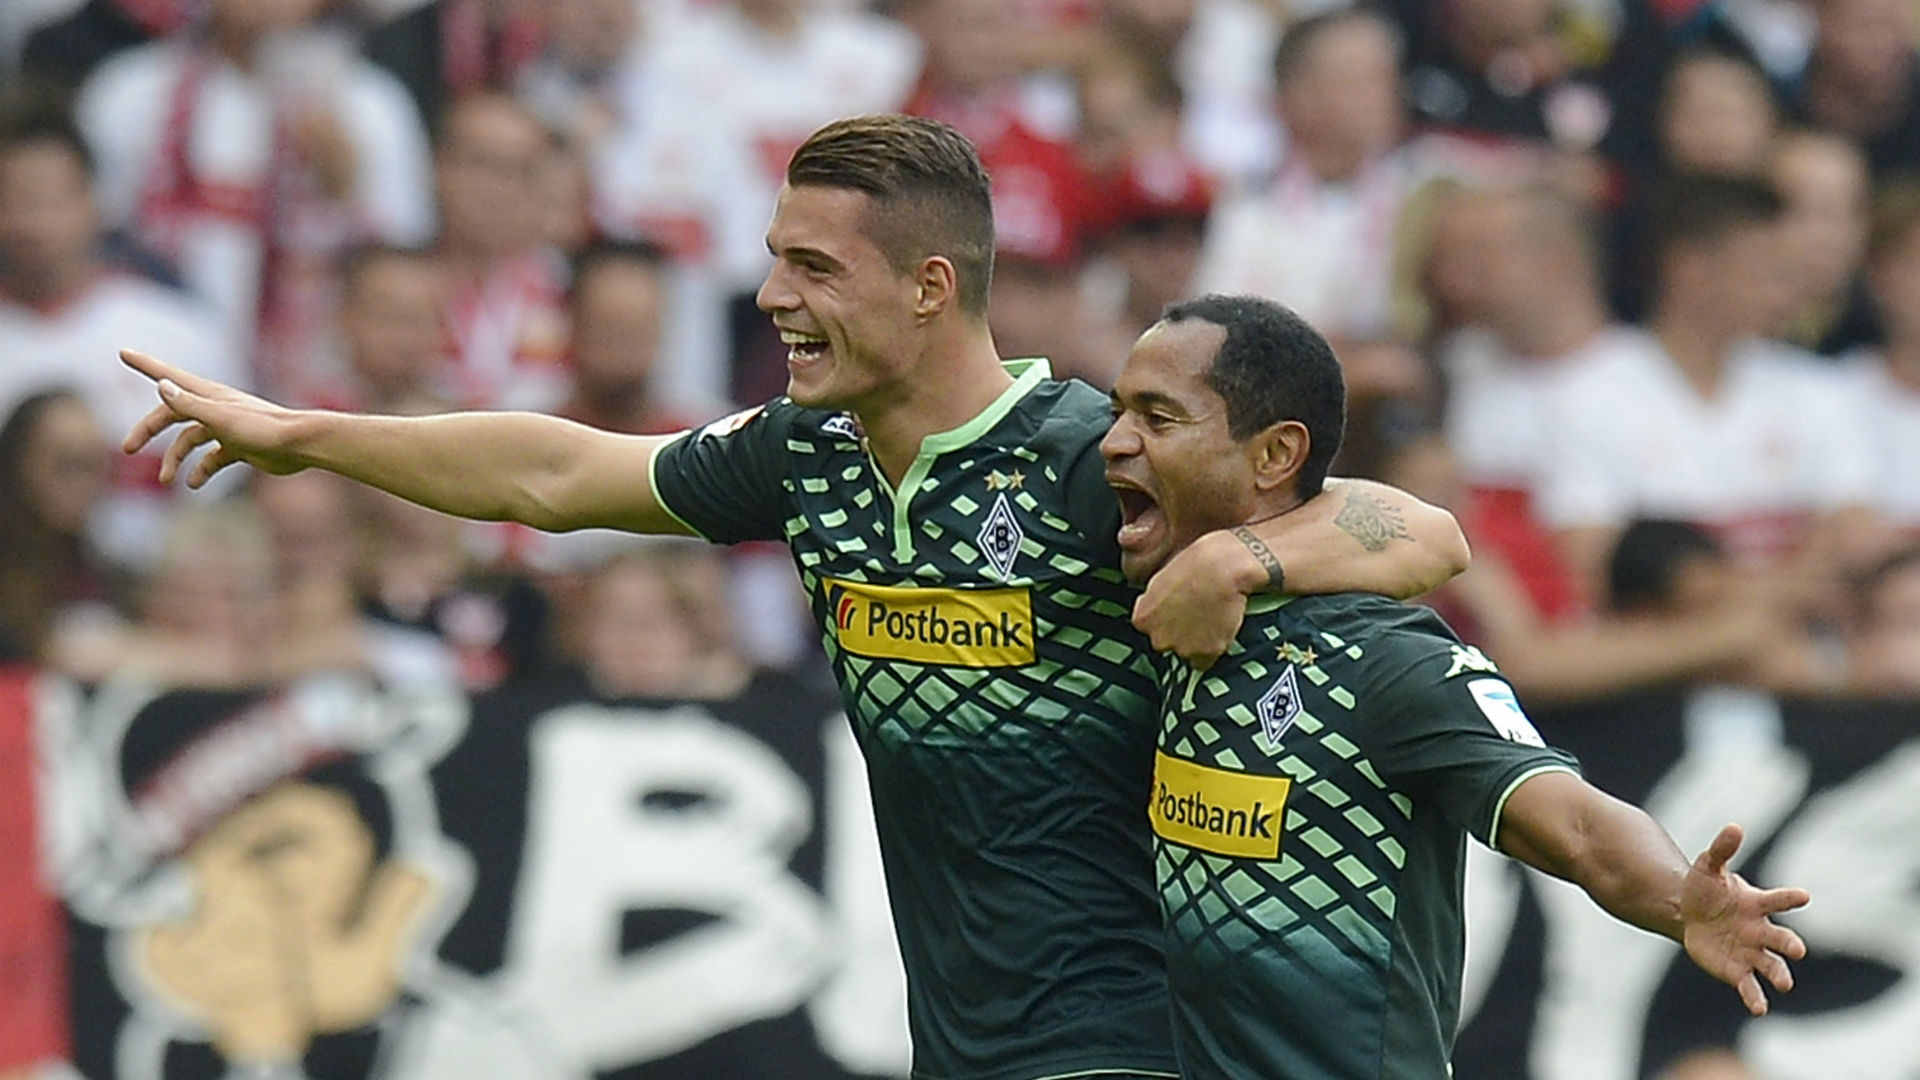 Video: Stuttgart vs Borussia M gladbach